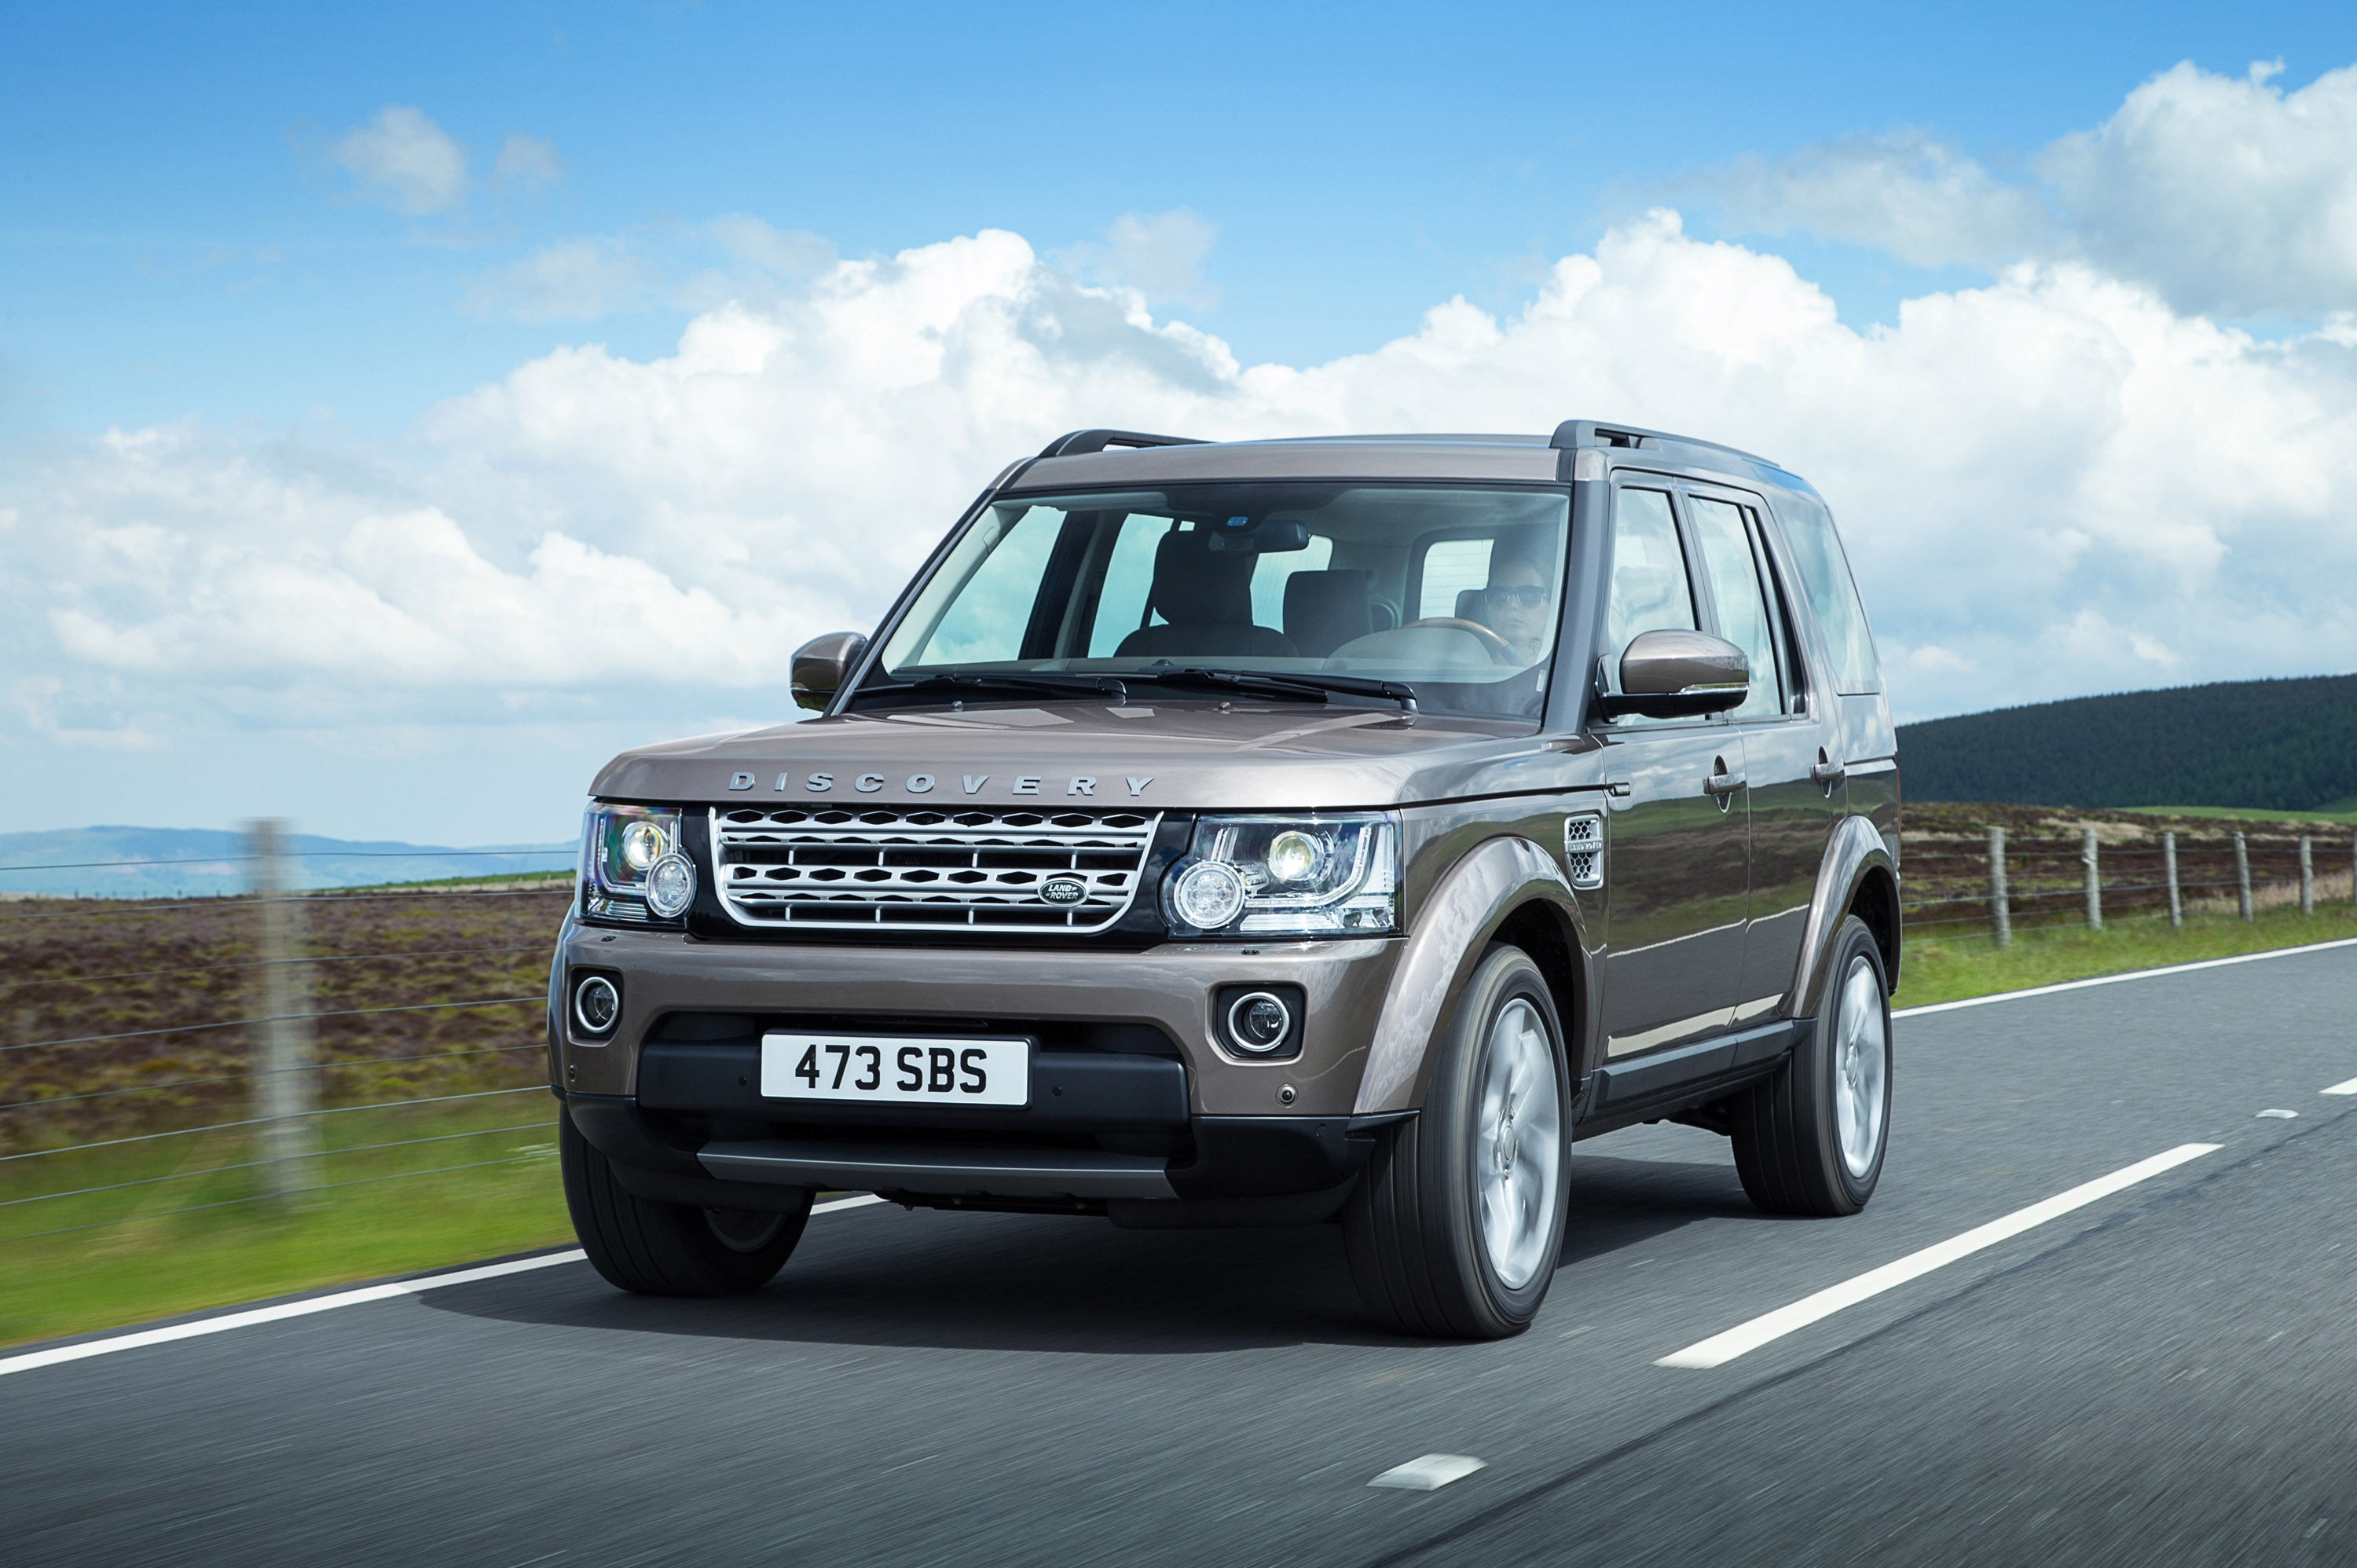 Land Rover Discovery photo #1